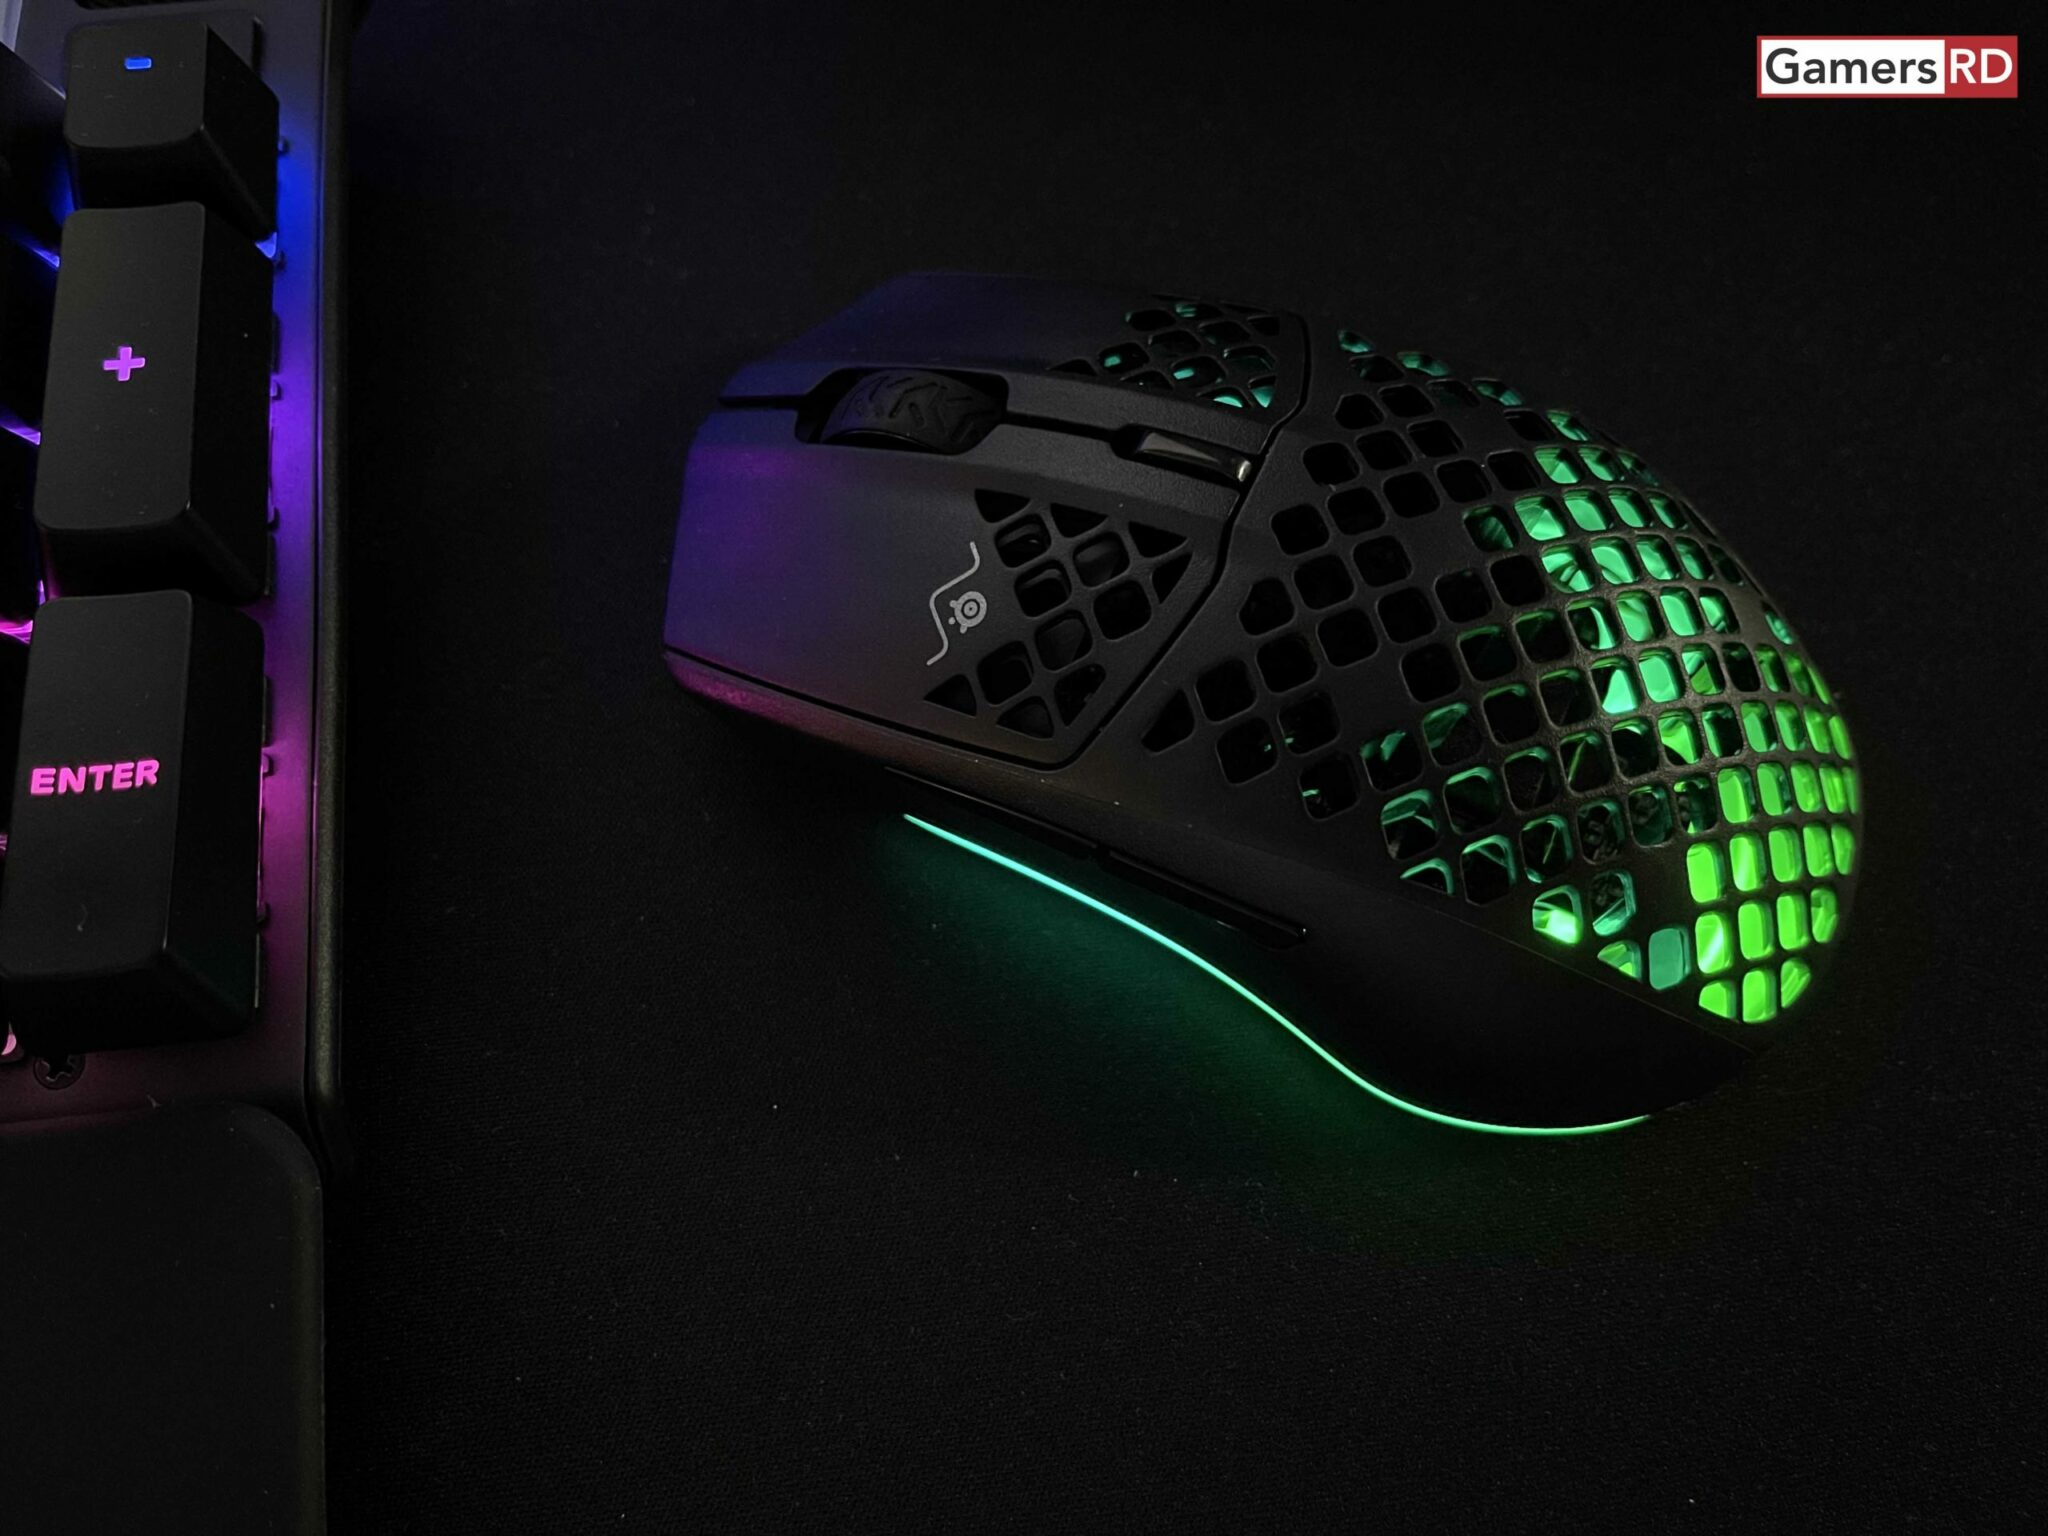 Steel Series Aerox 5 Wireless mouse gaming, Review 4 GamersRD